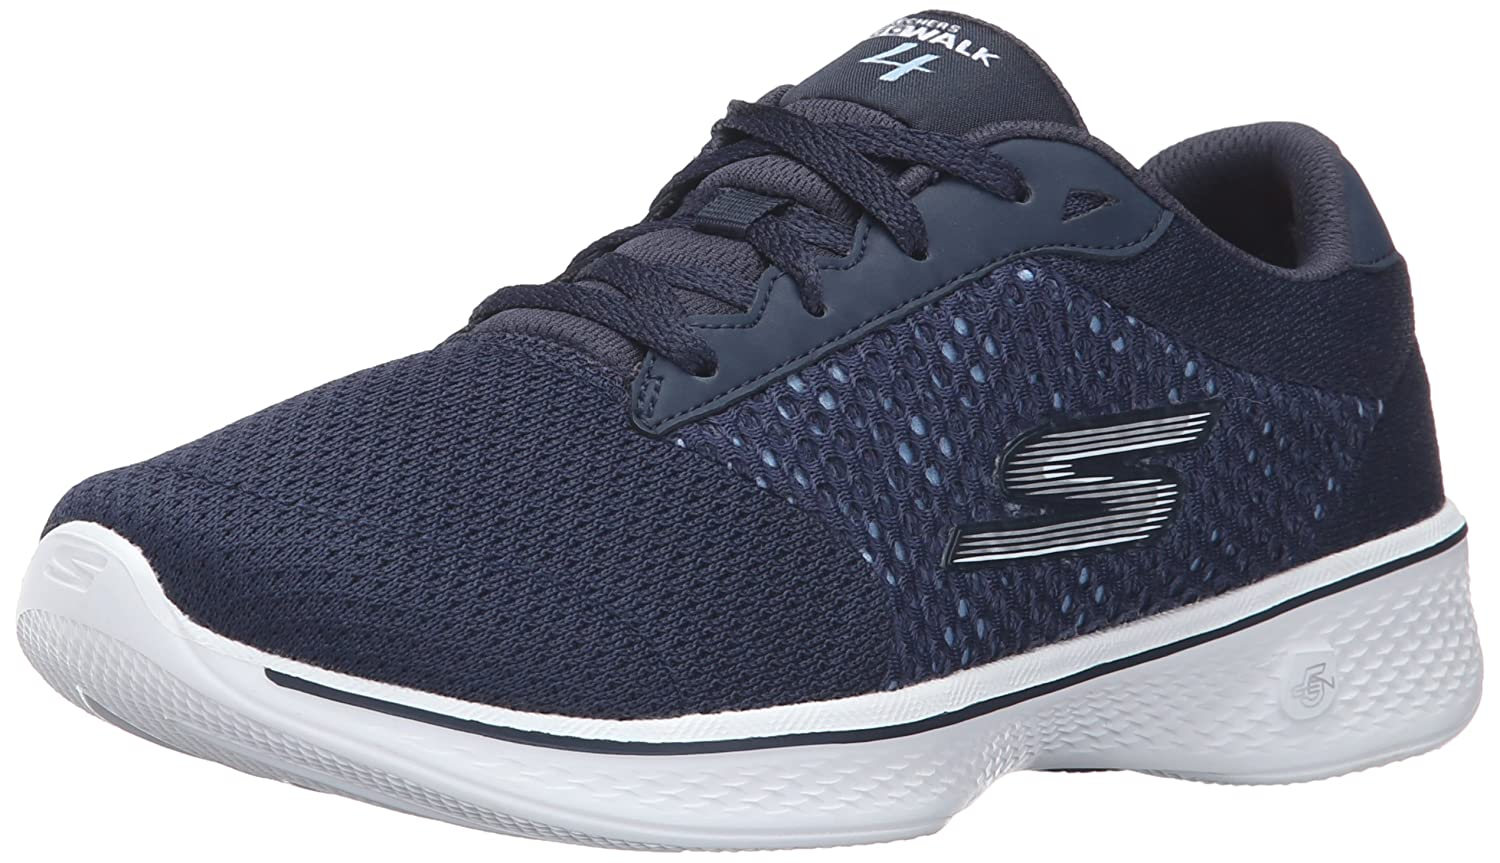 Skechers Performance Women's Go Walk 4 Exceed Lace-up Sneaker B01AH00VAG 7.5 B(M) US|Navy/White